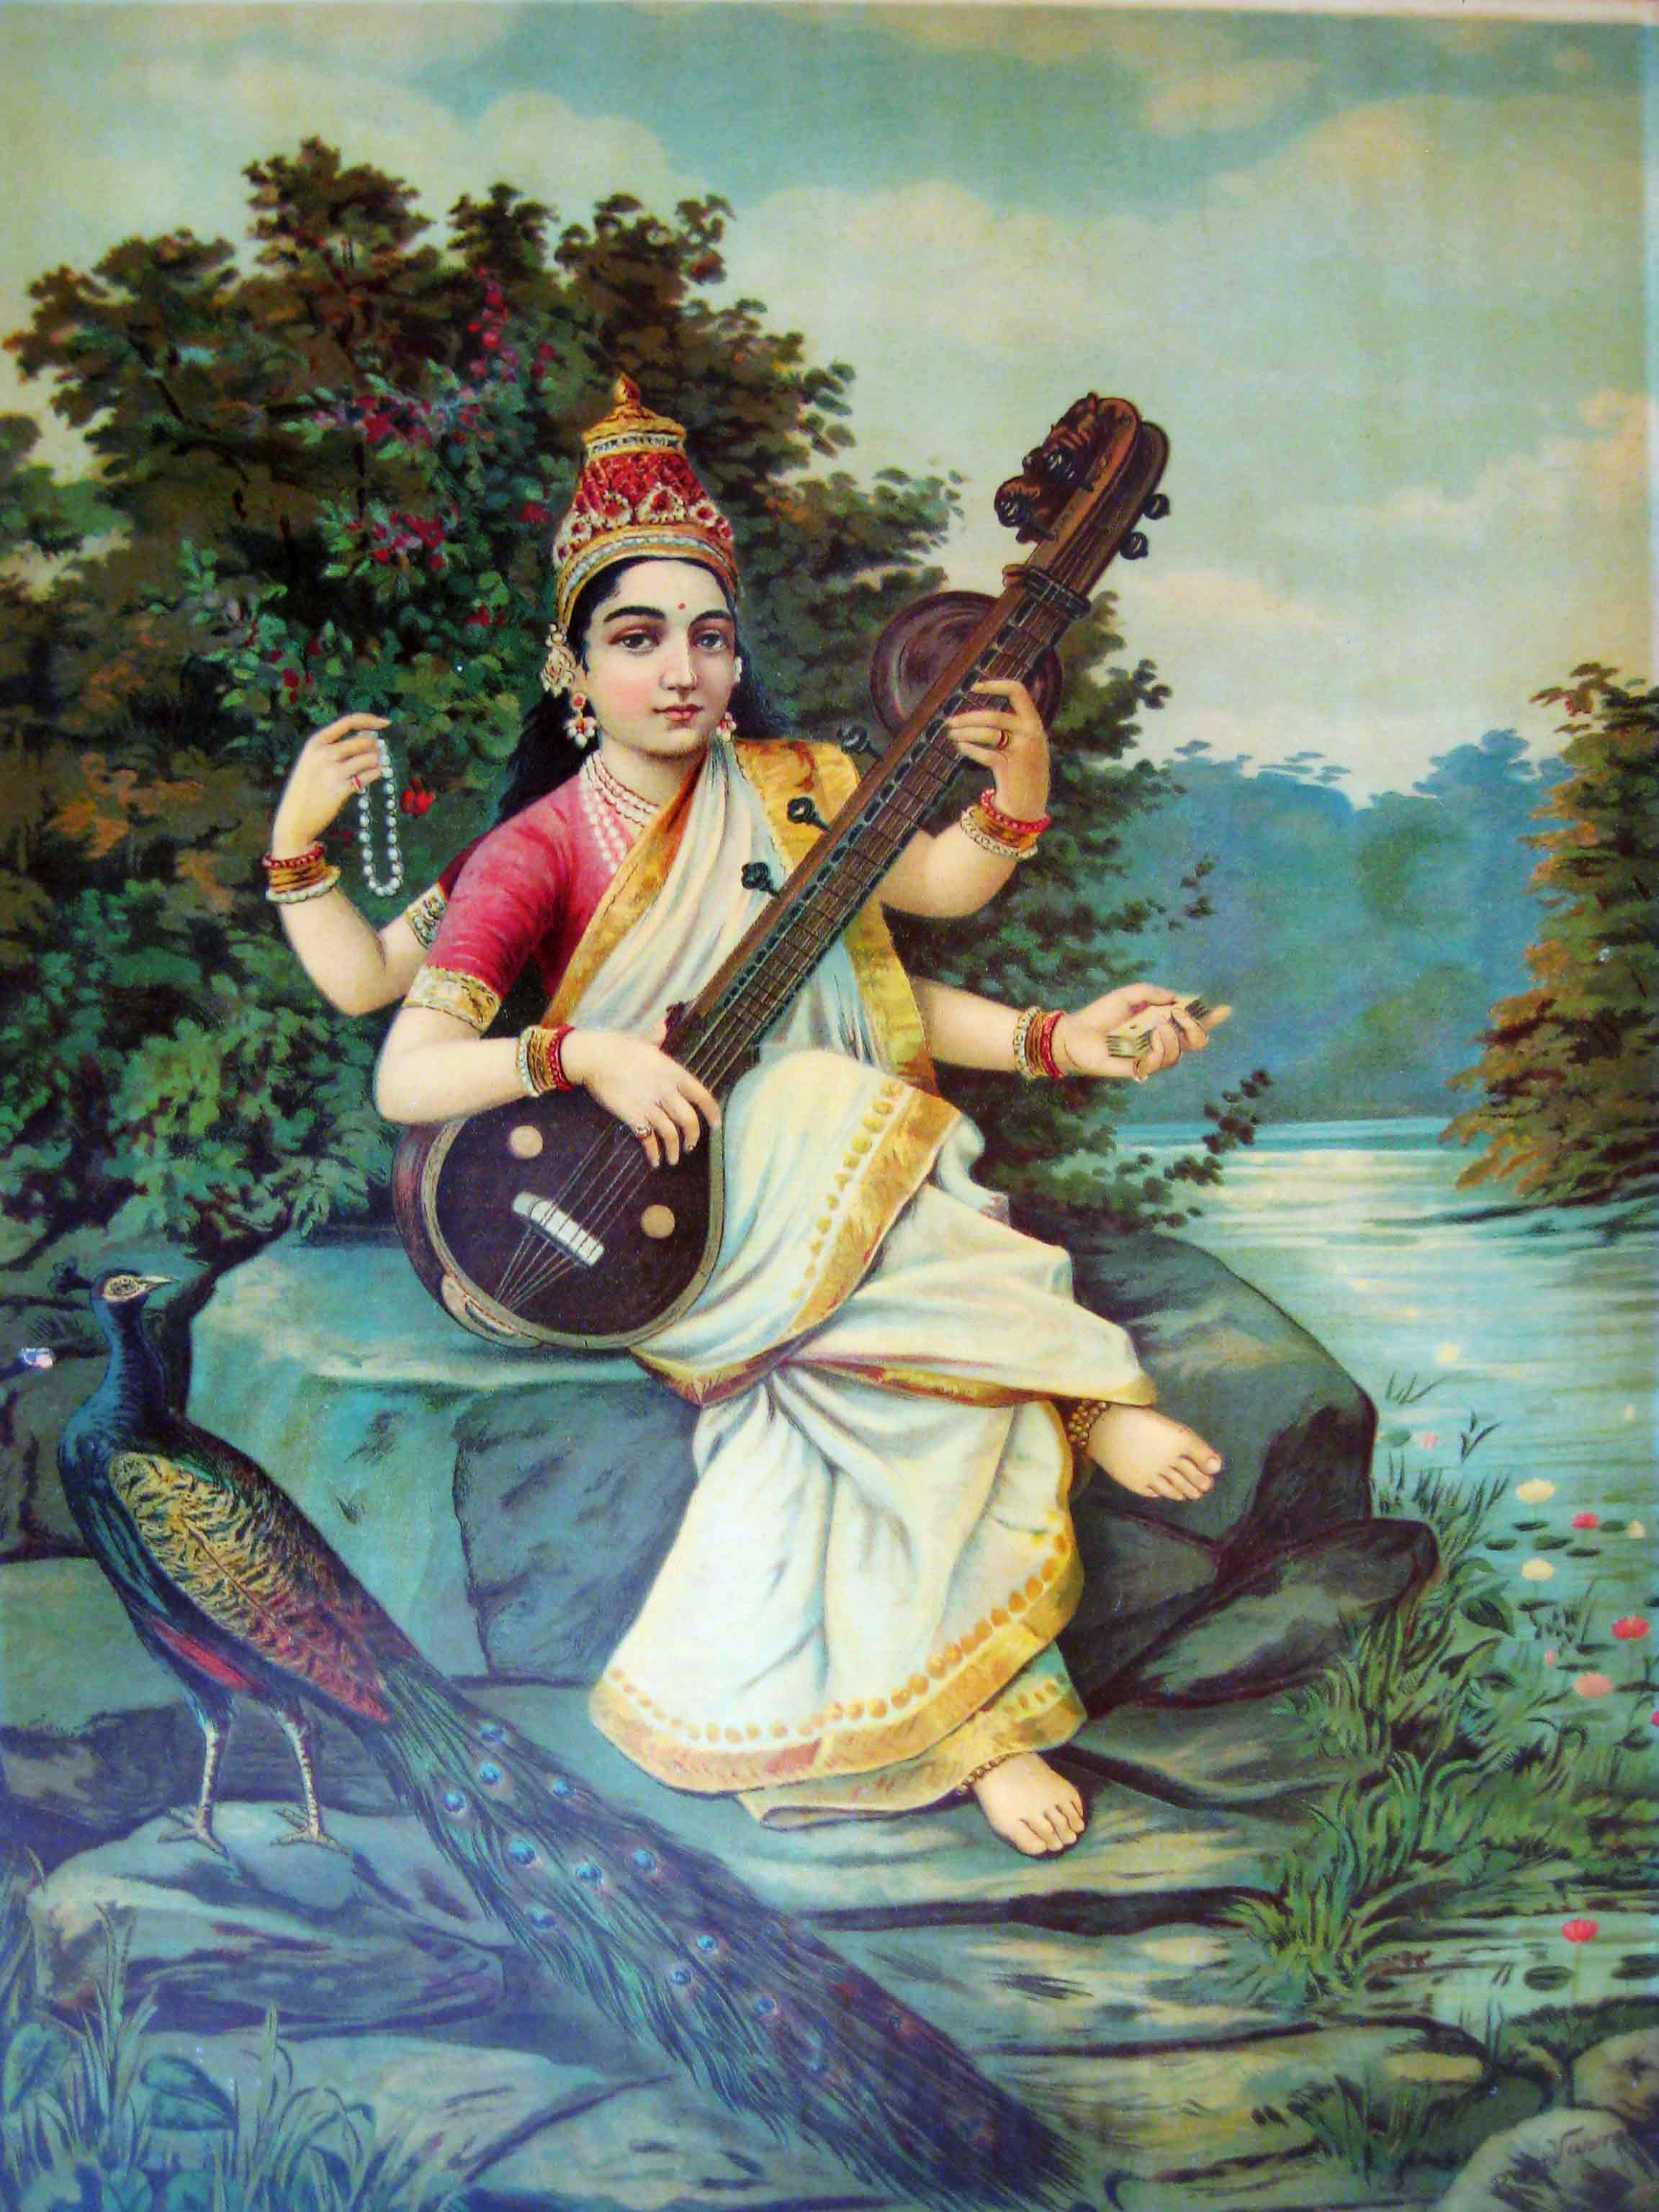 Vac, or Saraswati - Goddess of Sound